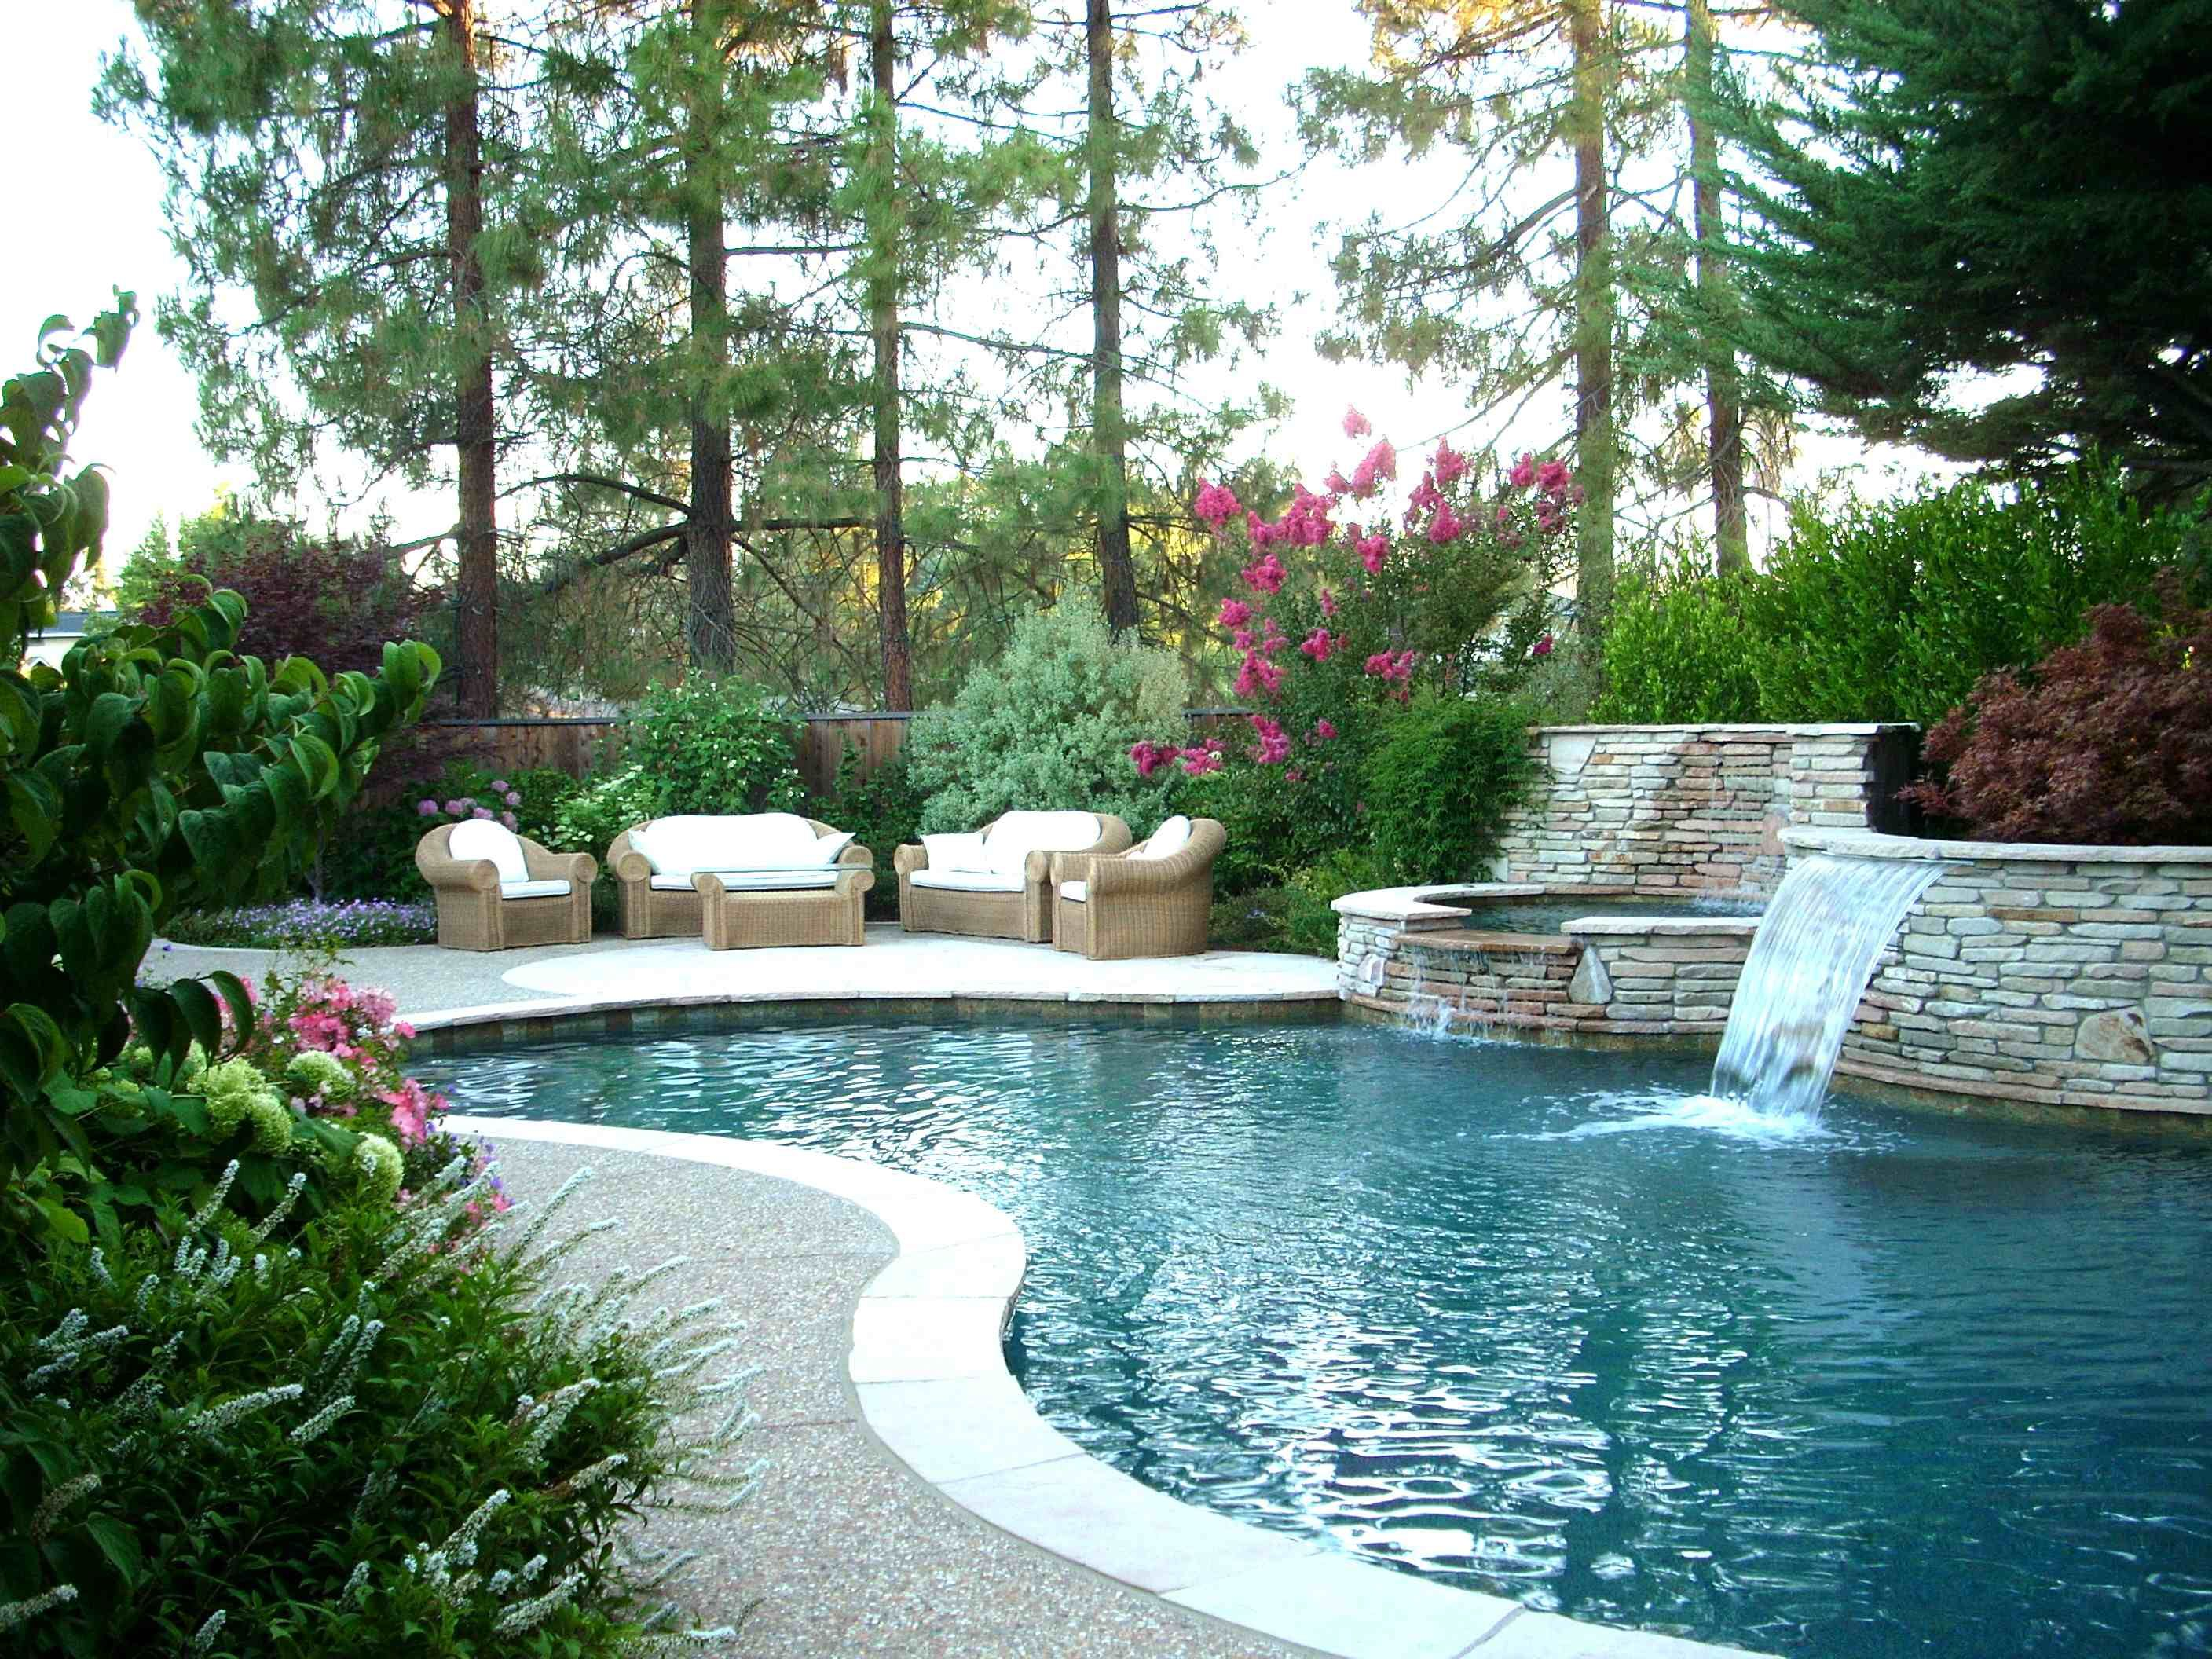 Landscaped pool pictures landscape design ideas for for Garden pool landscaping